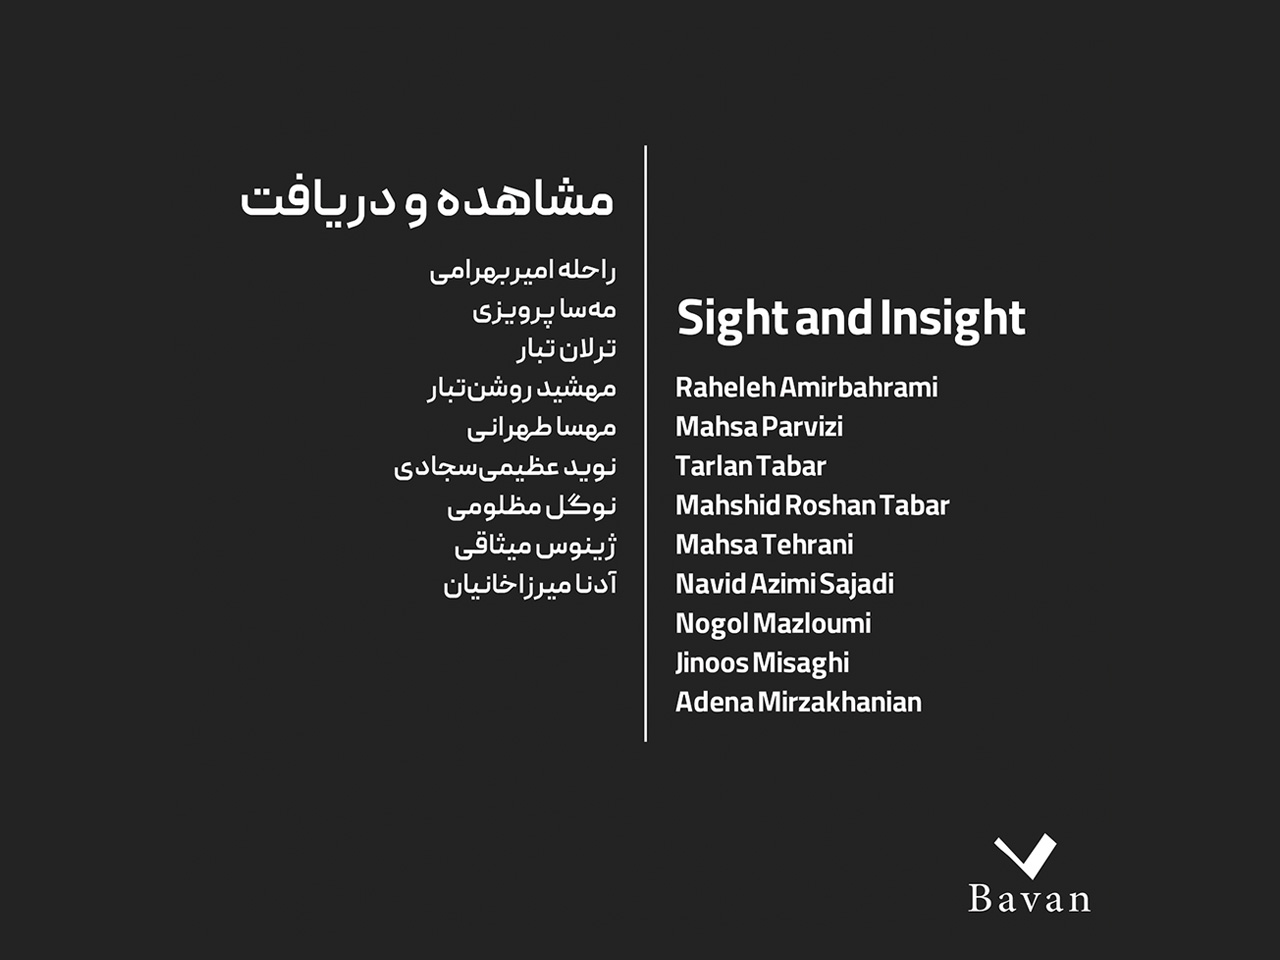 Sight and Insight